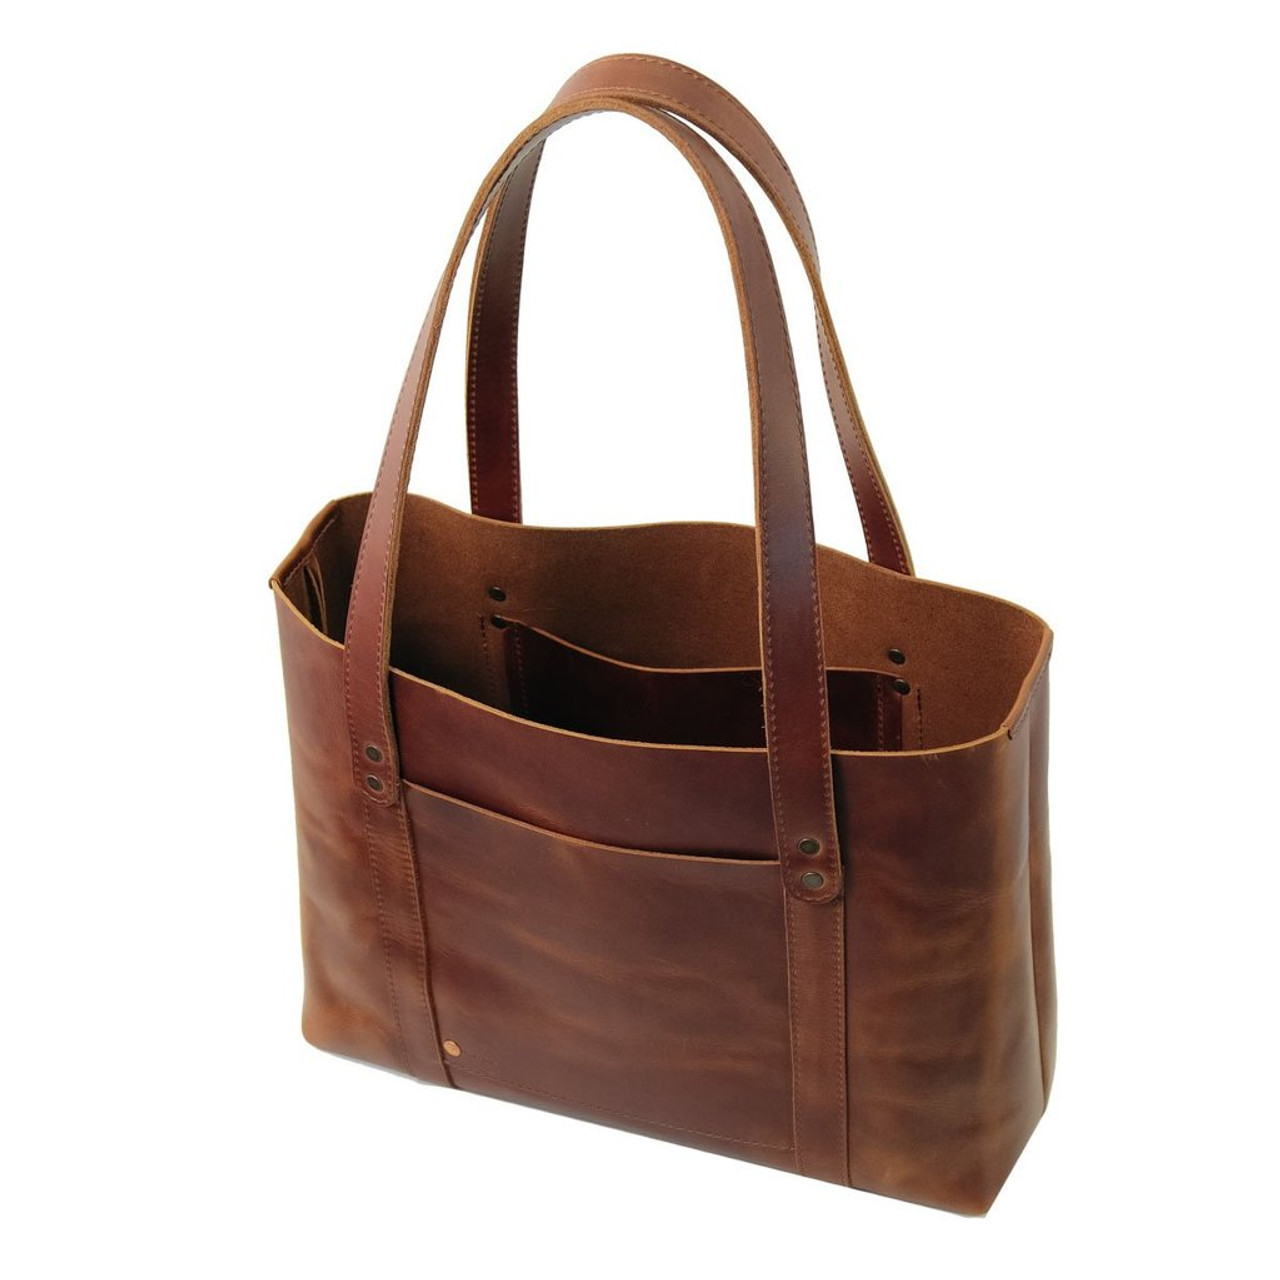 Leather Tote - Hideout by Rustico - Saddle - Handcrafted